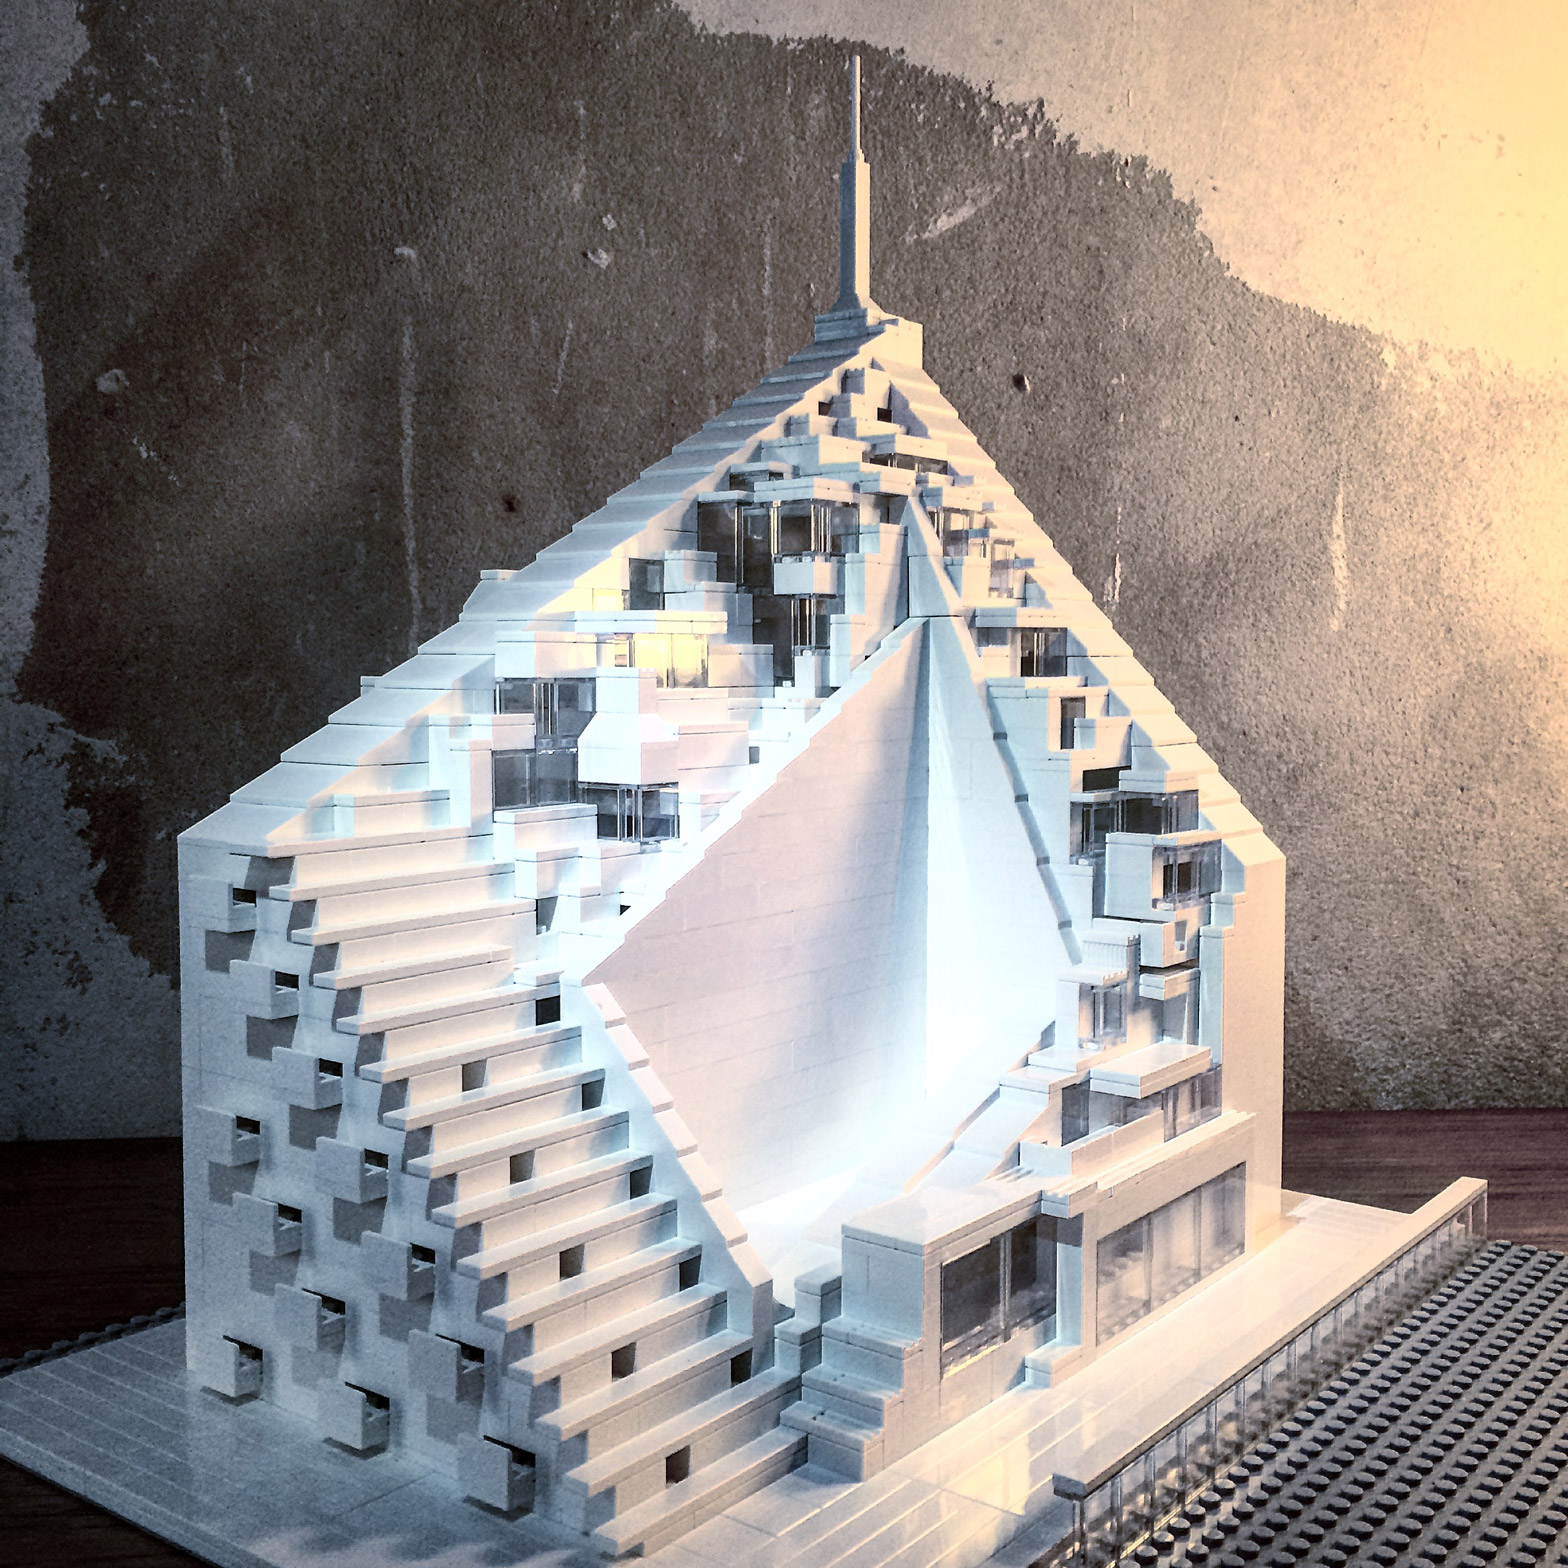 Arndt Schlaudraff recreates Brutalist buildings from Lego